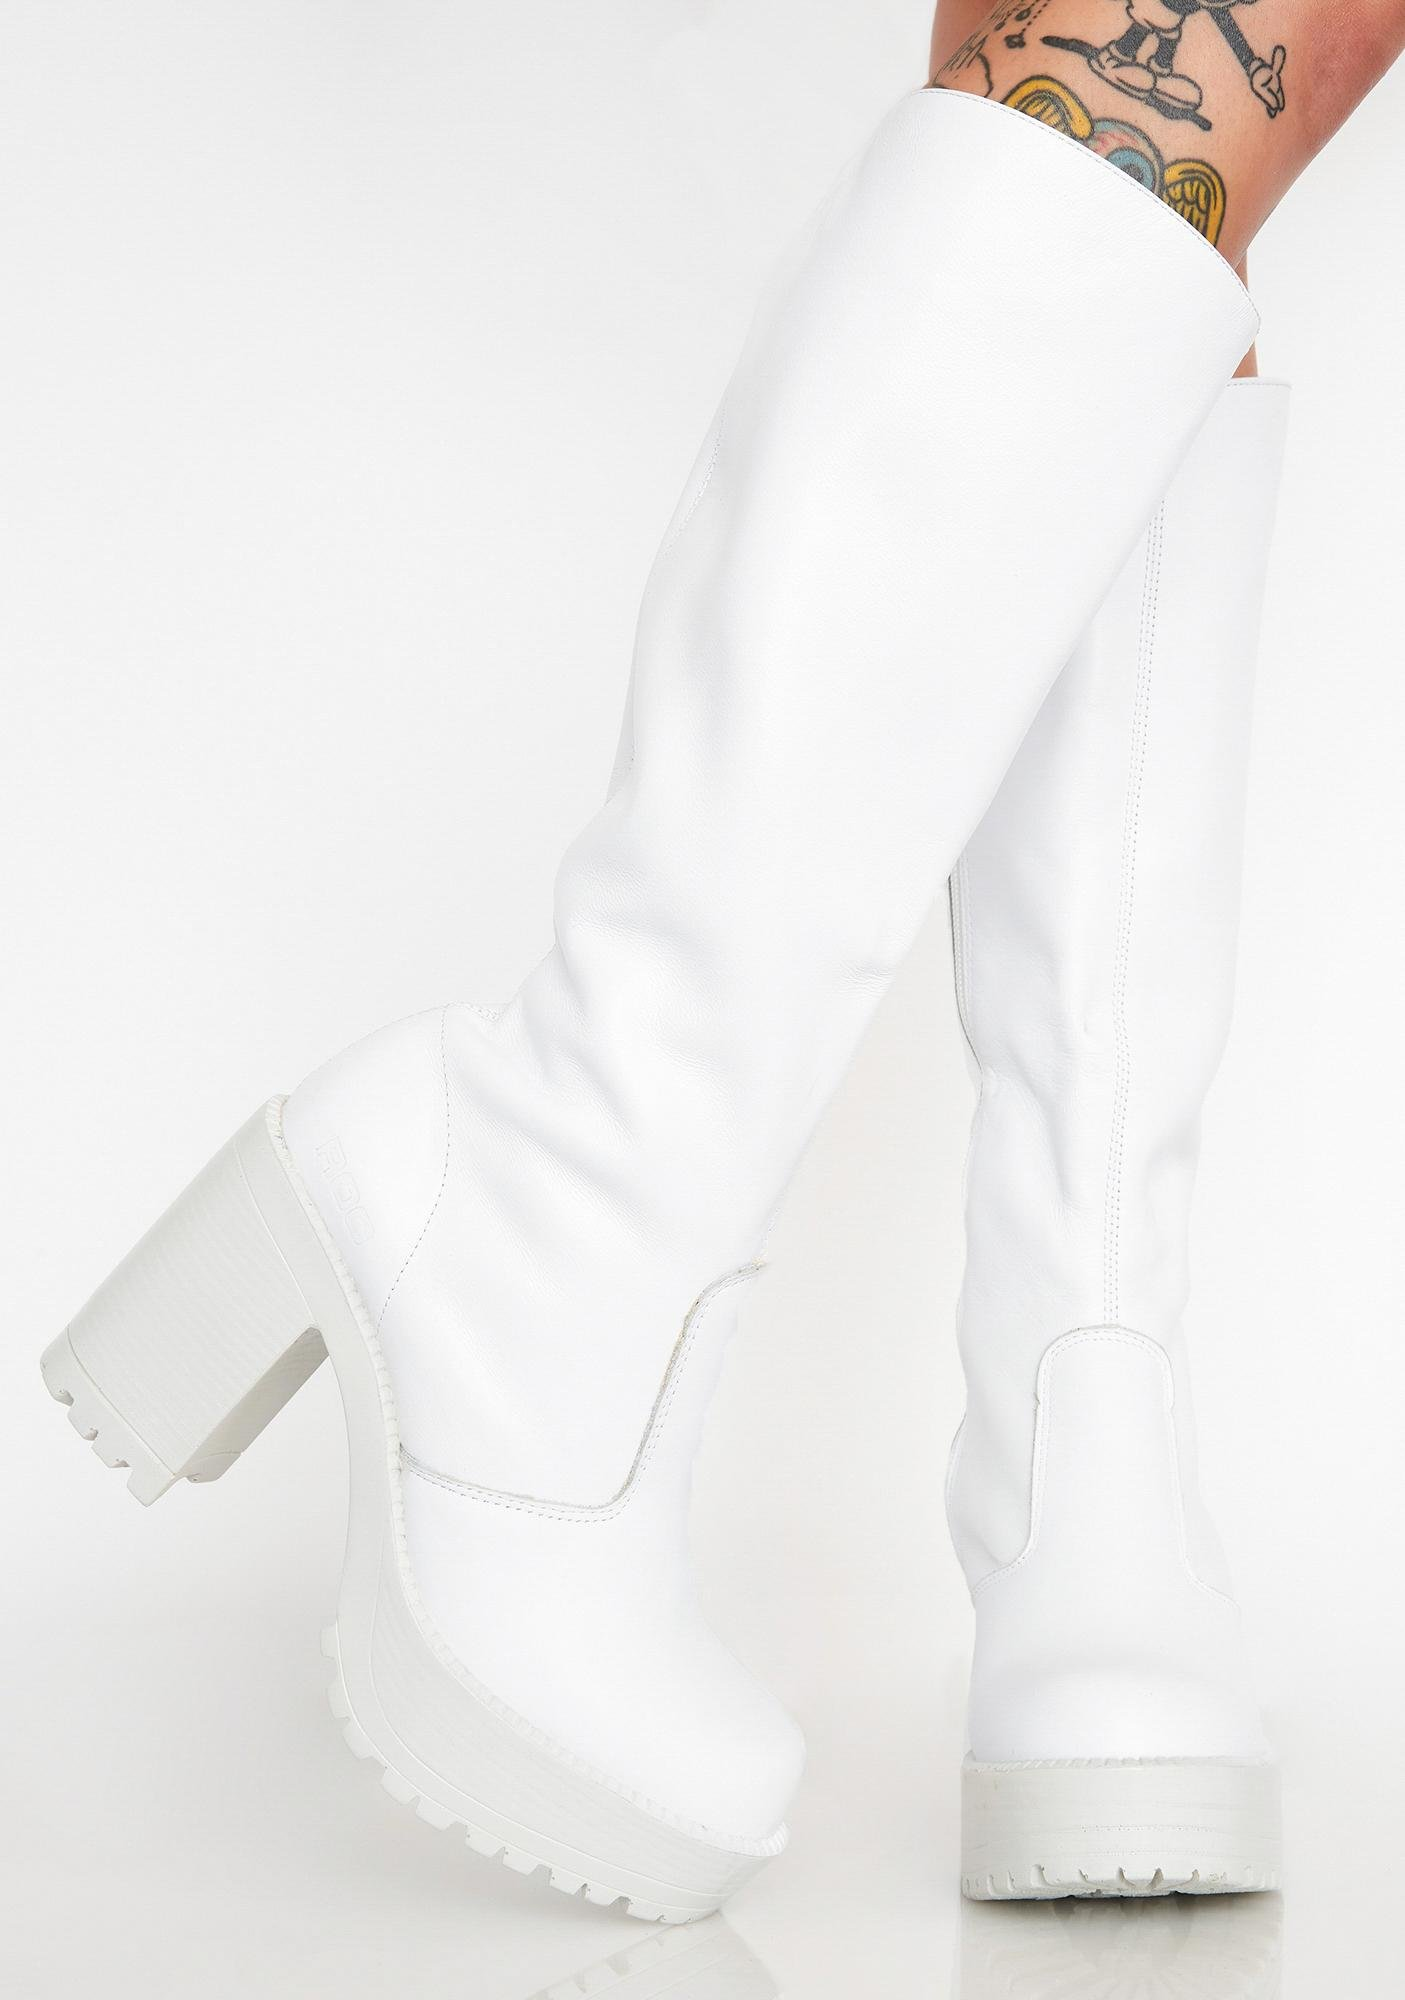 ROC Boots Australia Icy Gusto Knee High Boots